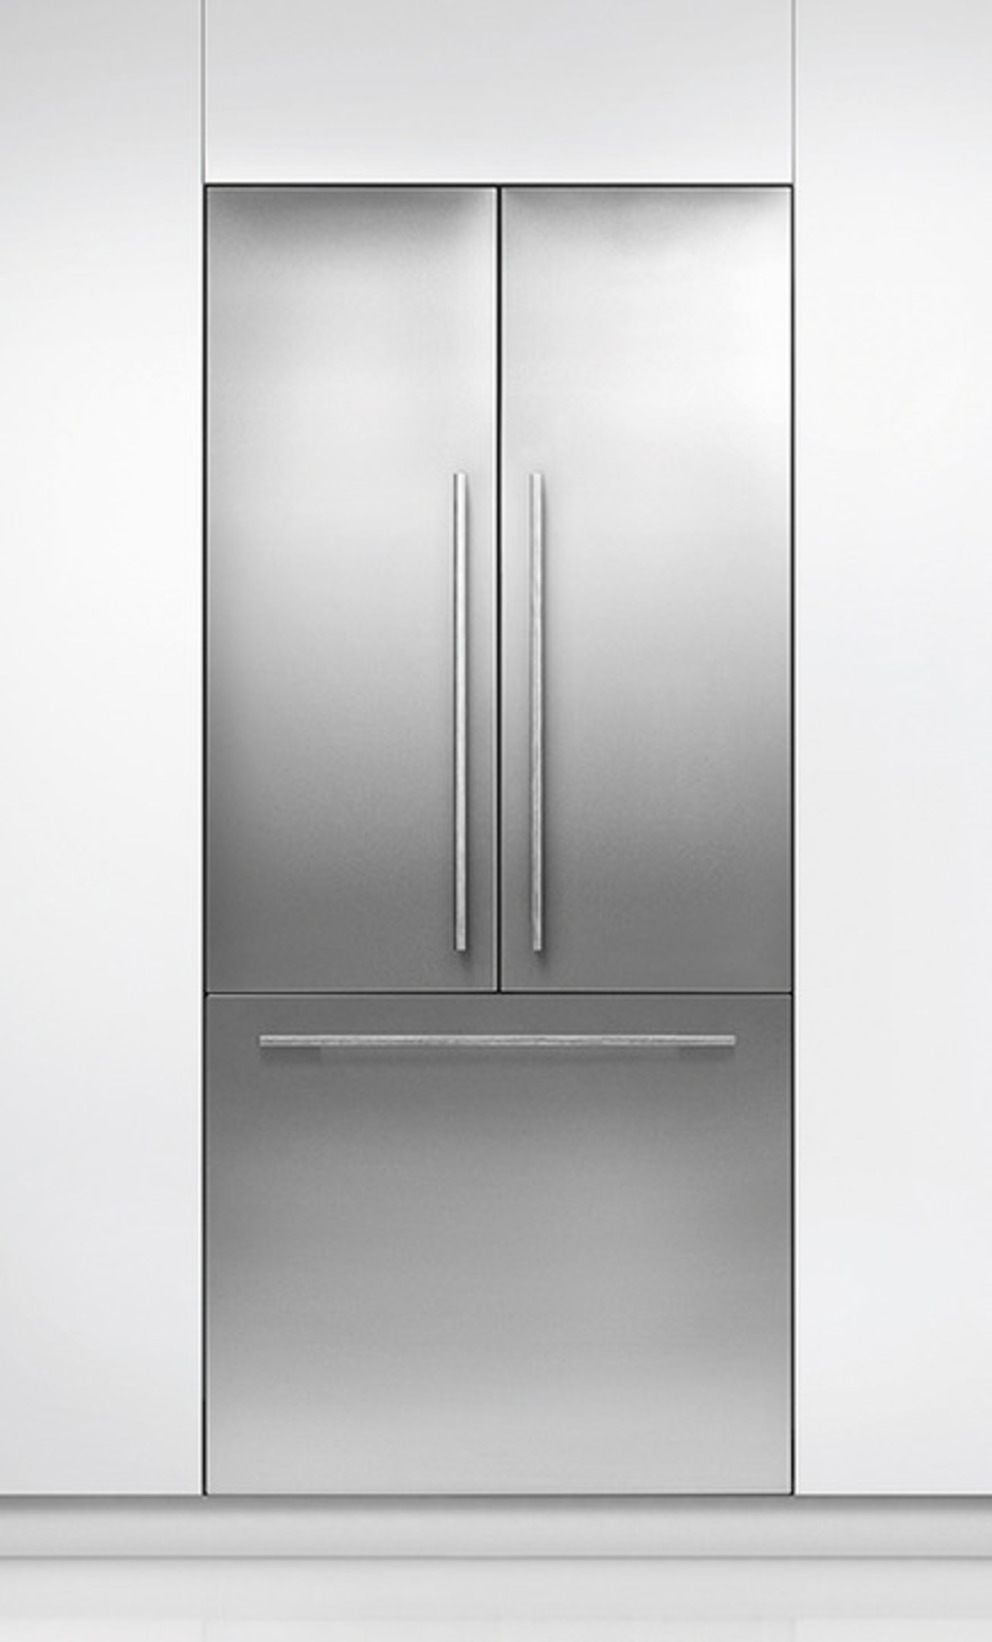 Réfrigérateurs Fisher&Paykel RS36A80J1 + RD3684 (84'' F&P)